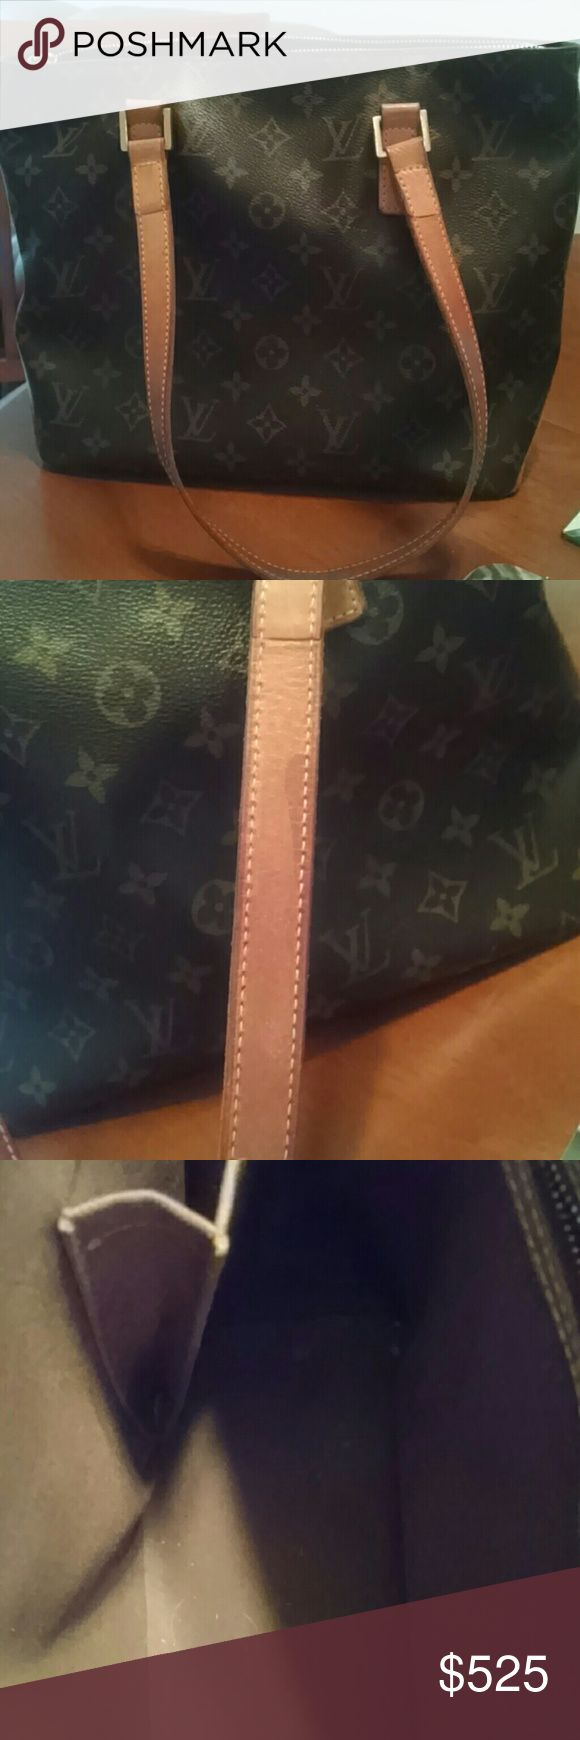 Authentic Louis Vuitton  Tote Cabas Piano small tote .Monogram coated canvas in good condition.Some wear and discoloration on handles/Patina. Zipper has tiny spot where brass color wore away.Inside in good shape .Base has watermarks and scratches Wear at corners of bag on leather.Its a great everyday bag. Louis Vuitton Bags Totes